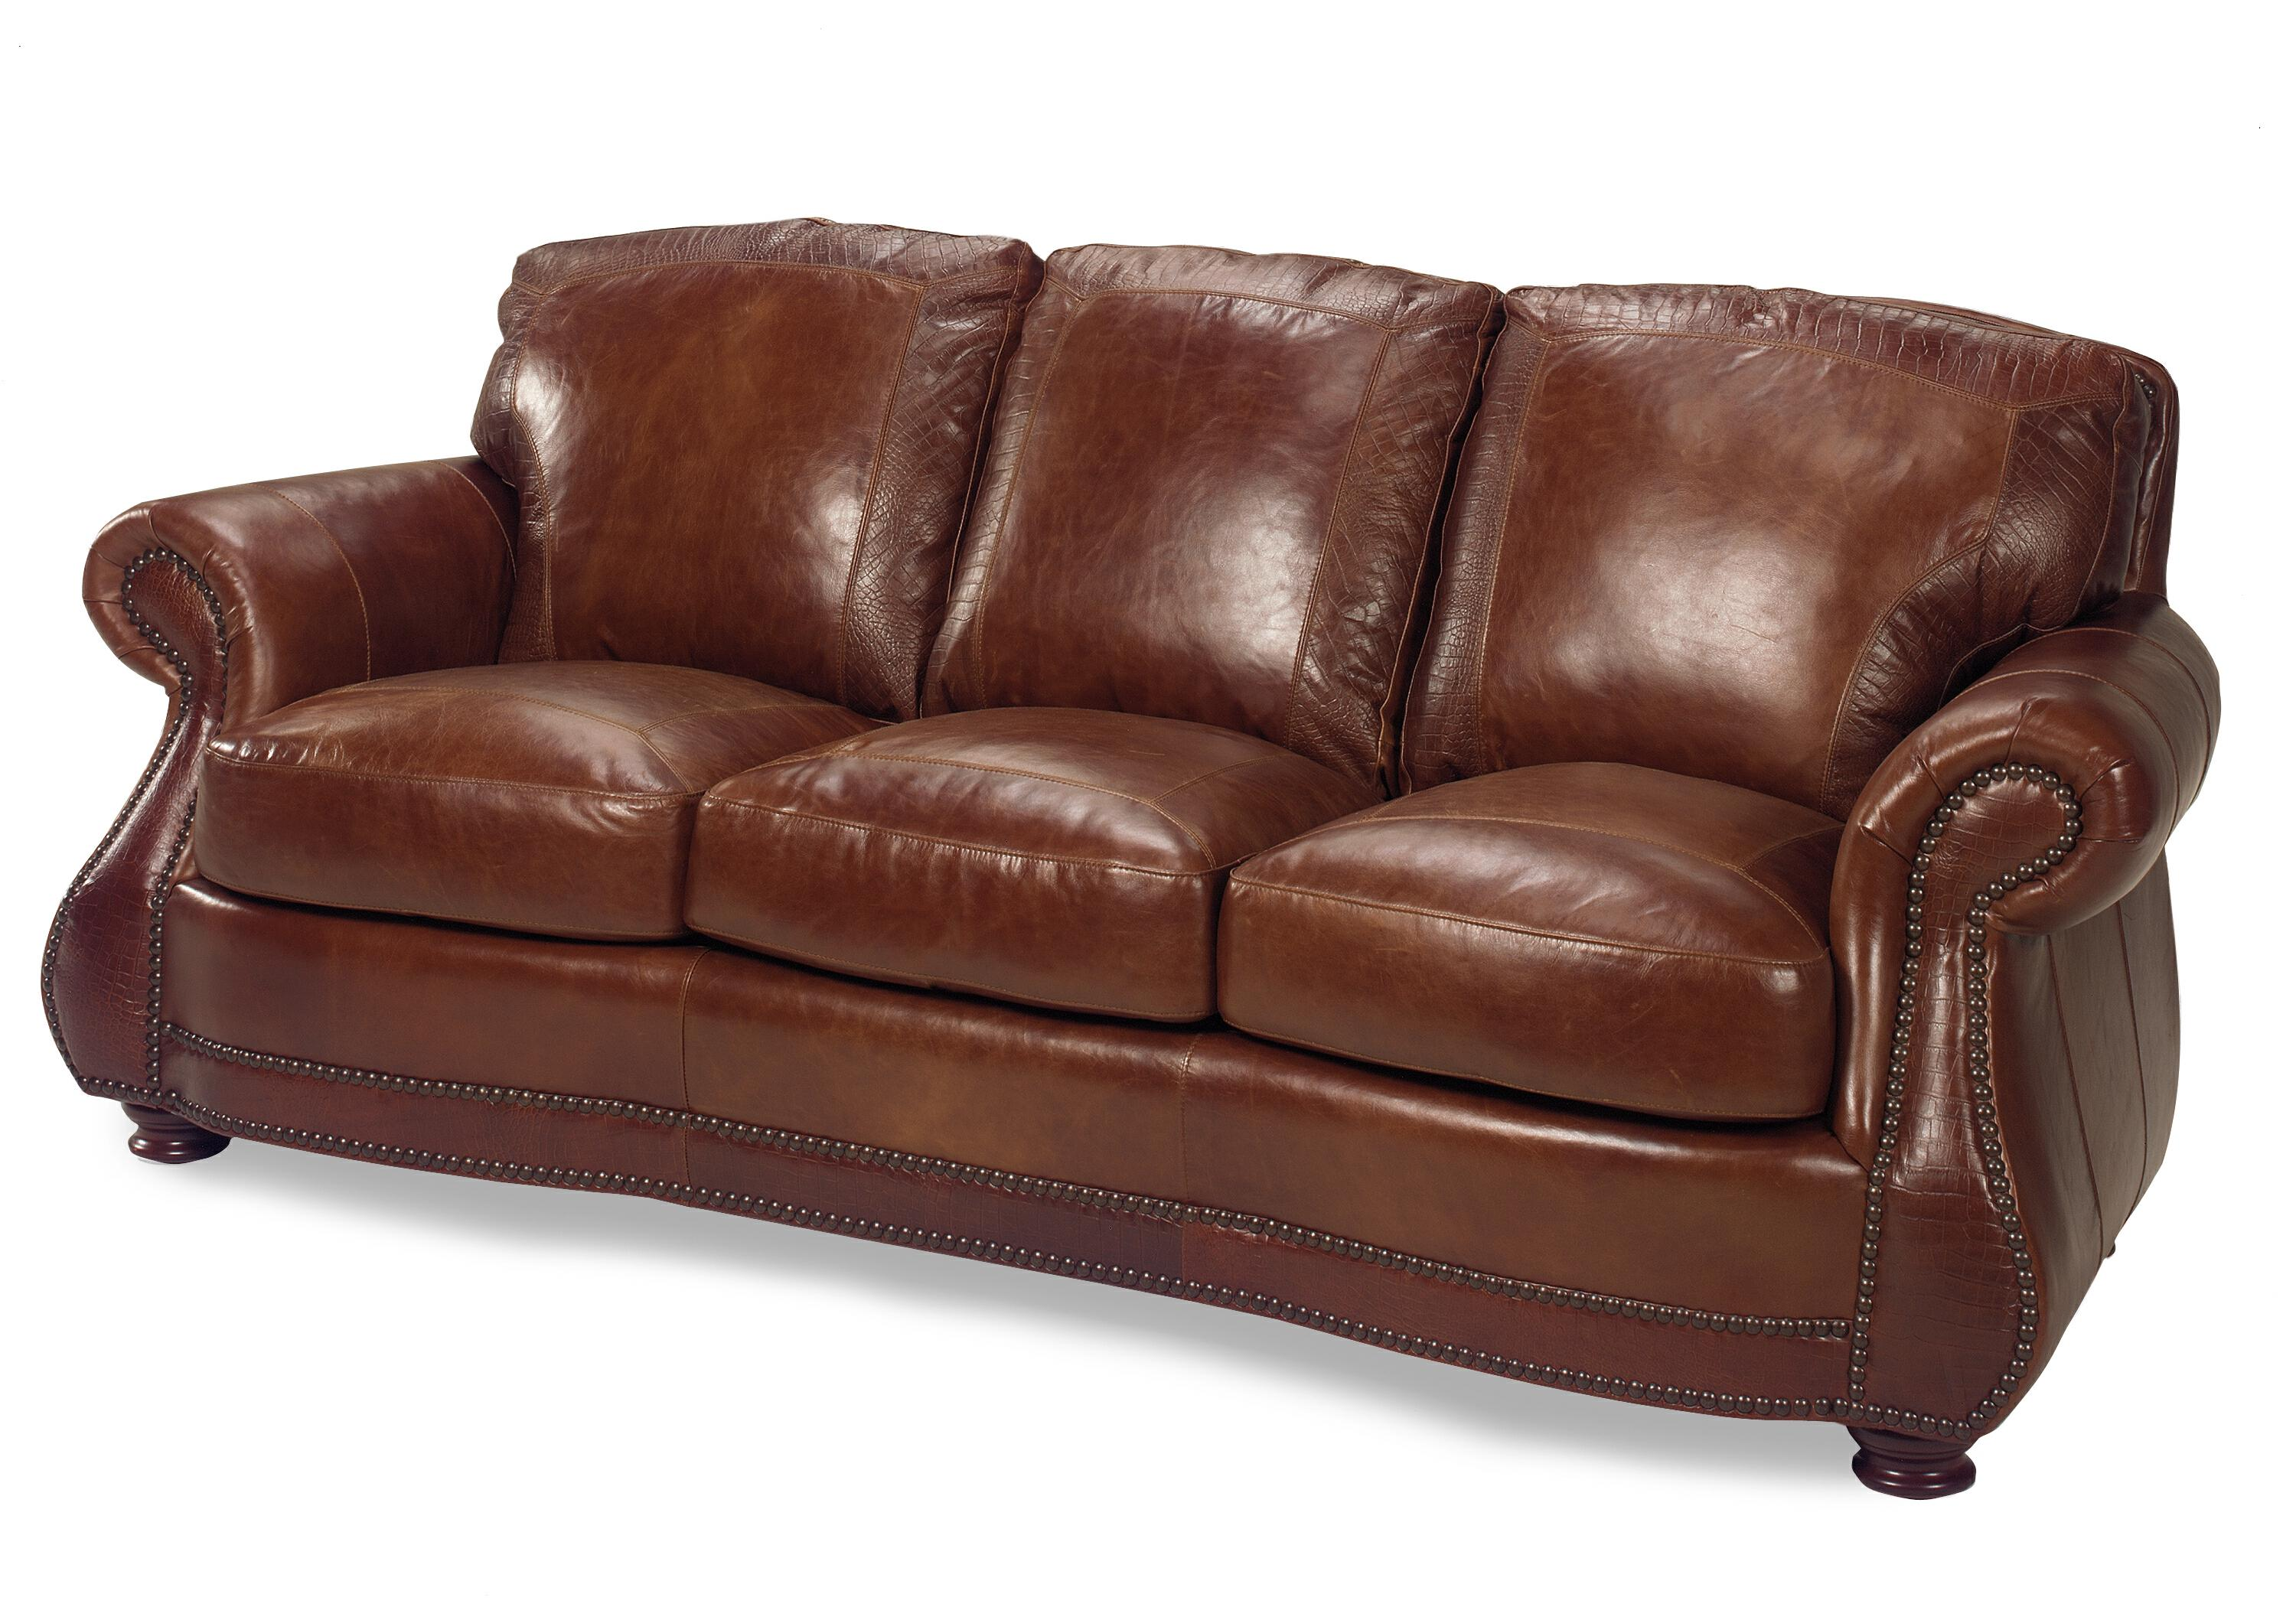 Traditional roll arm sofa w alligator by usa premium for Traditional leather furniture